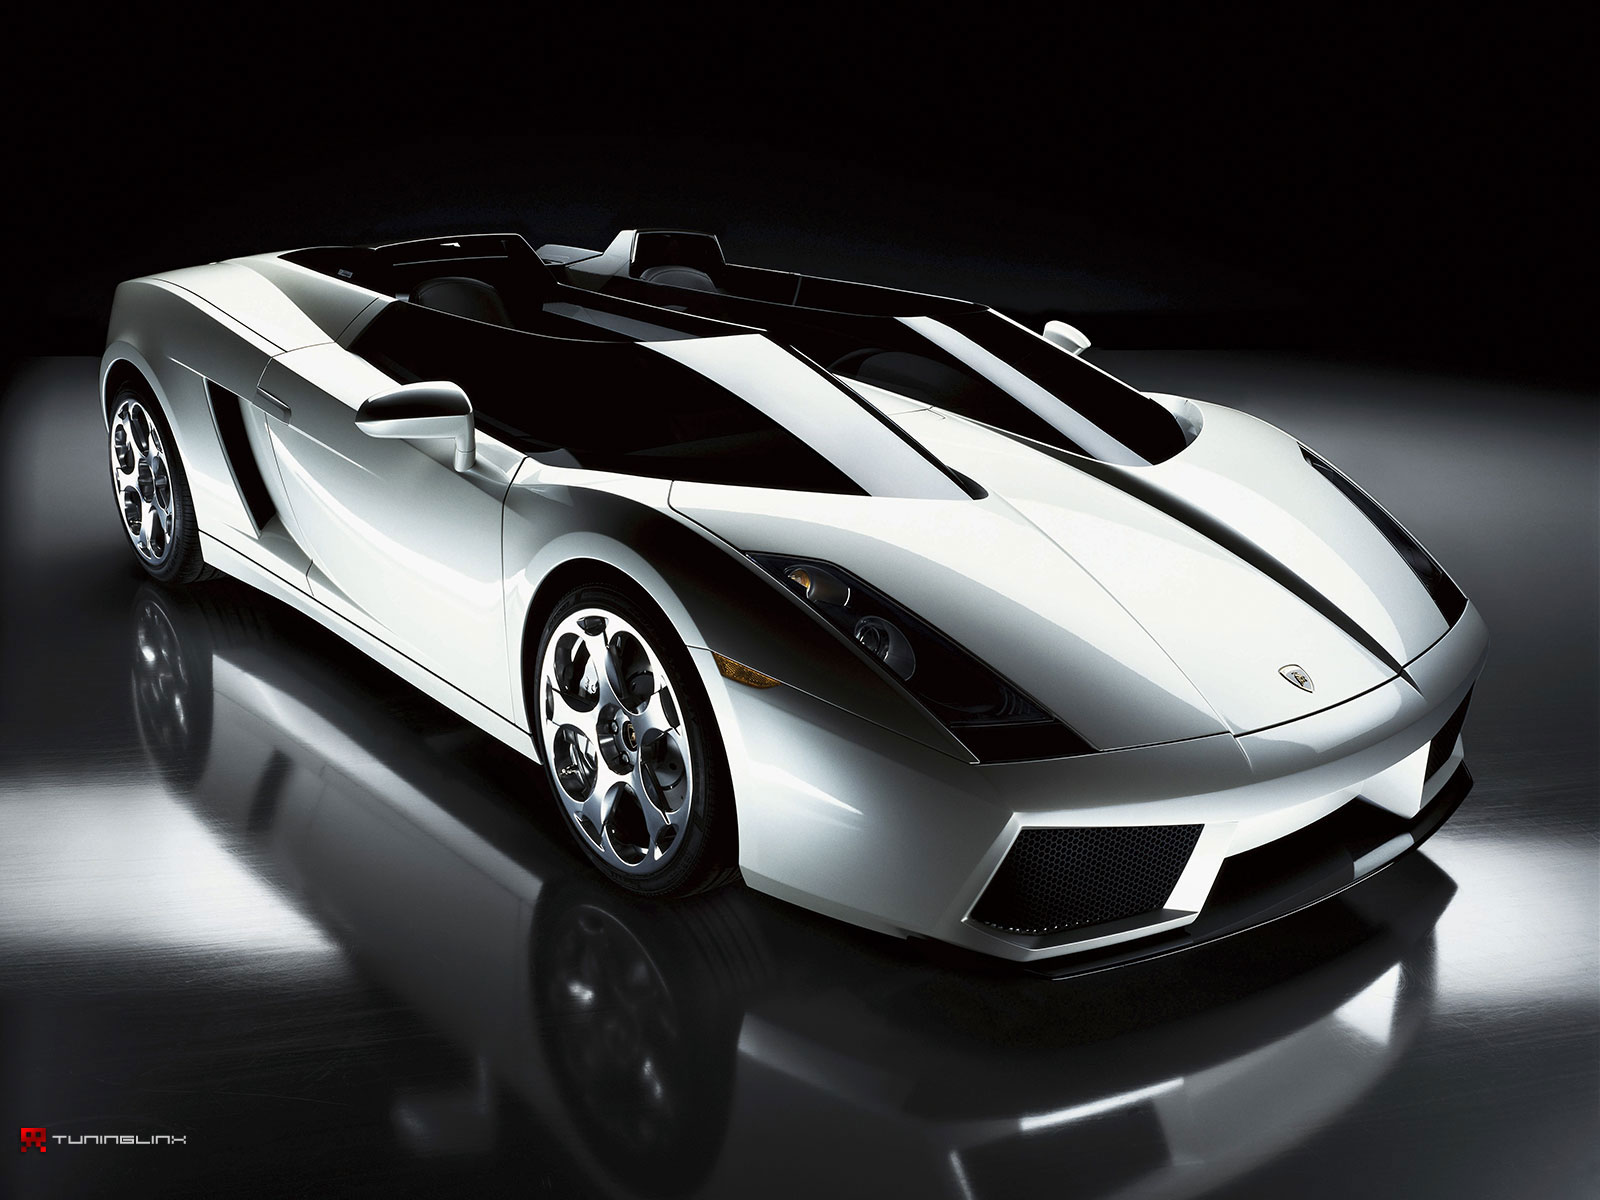 Lamborghini car wallpaper hd lamborghini car wallpaper hd lamborghini